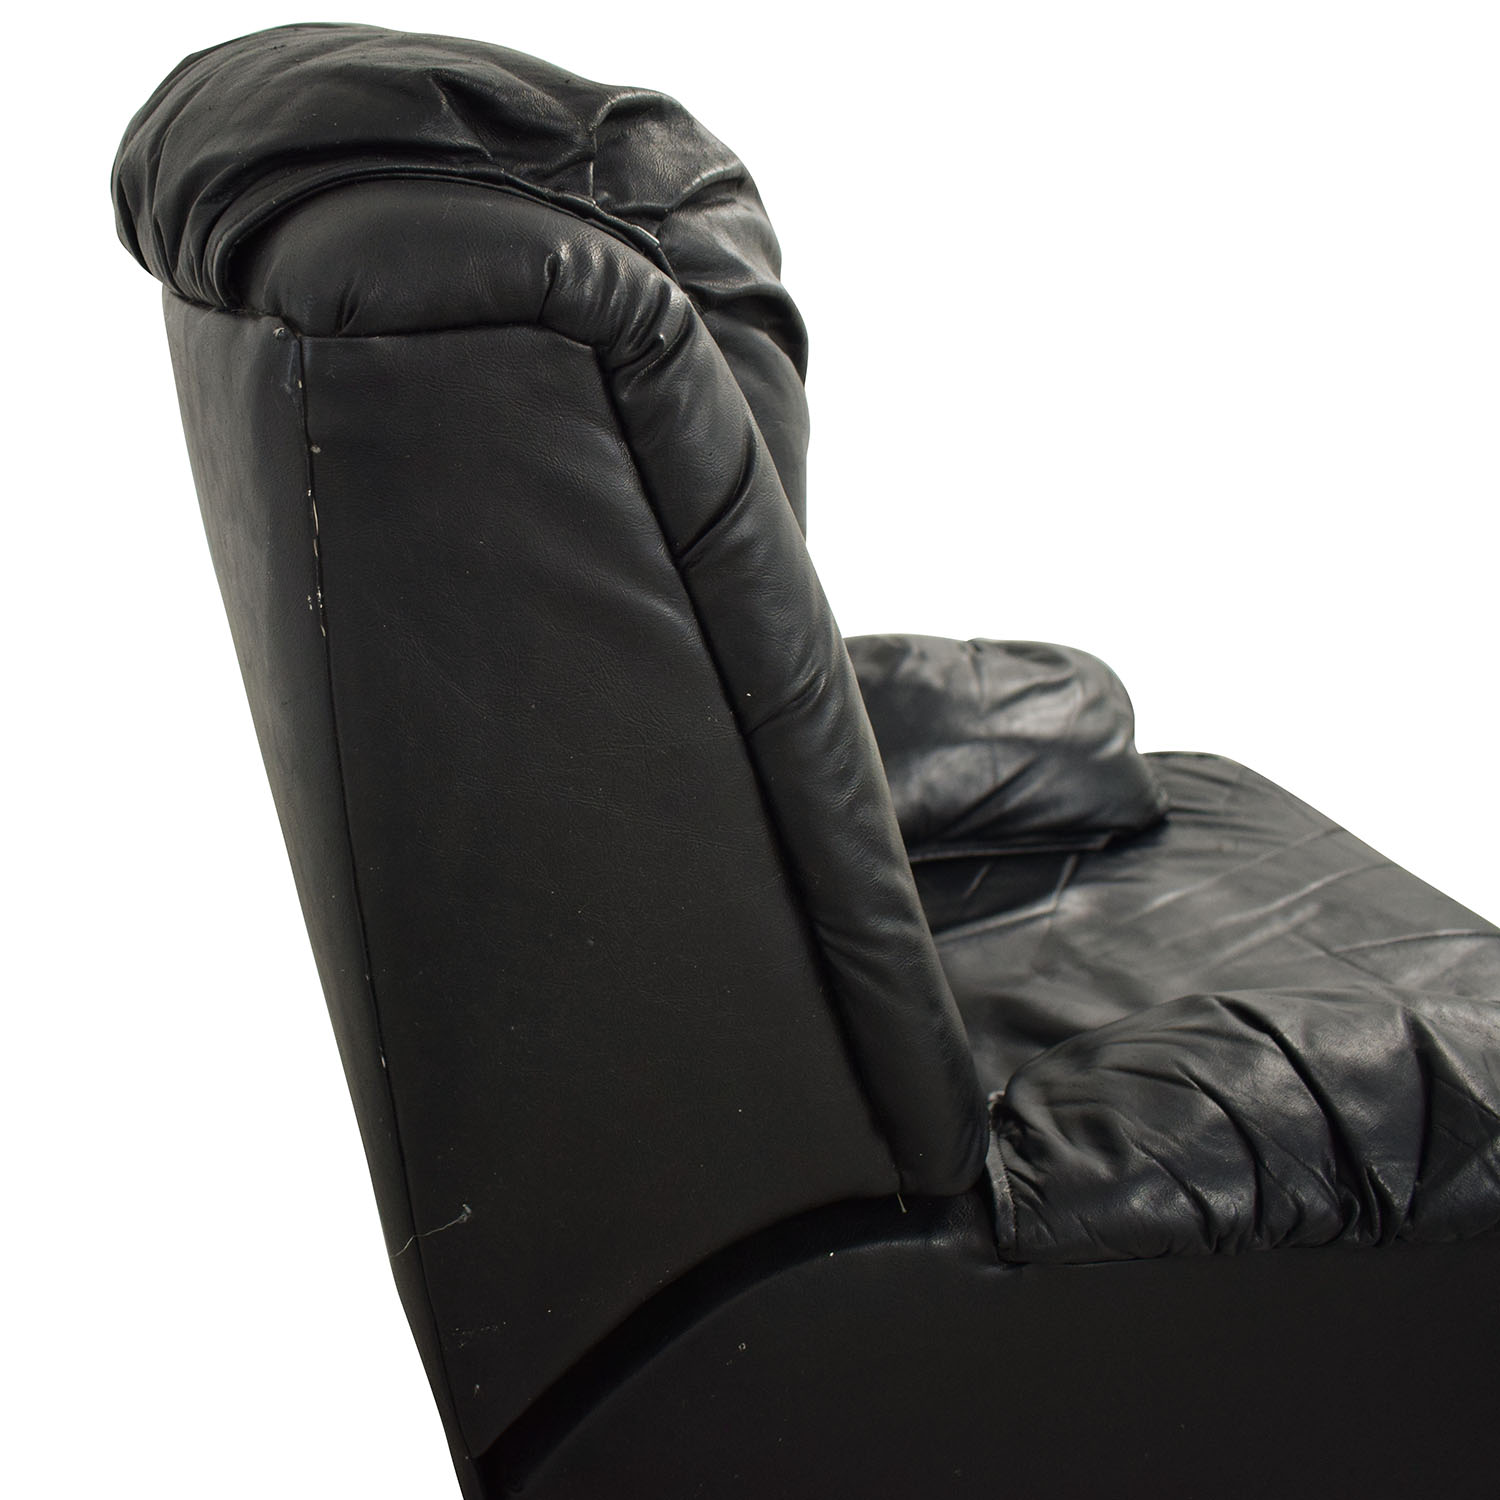 Barcalounger Barcalounger Leather Recliner for sale